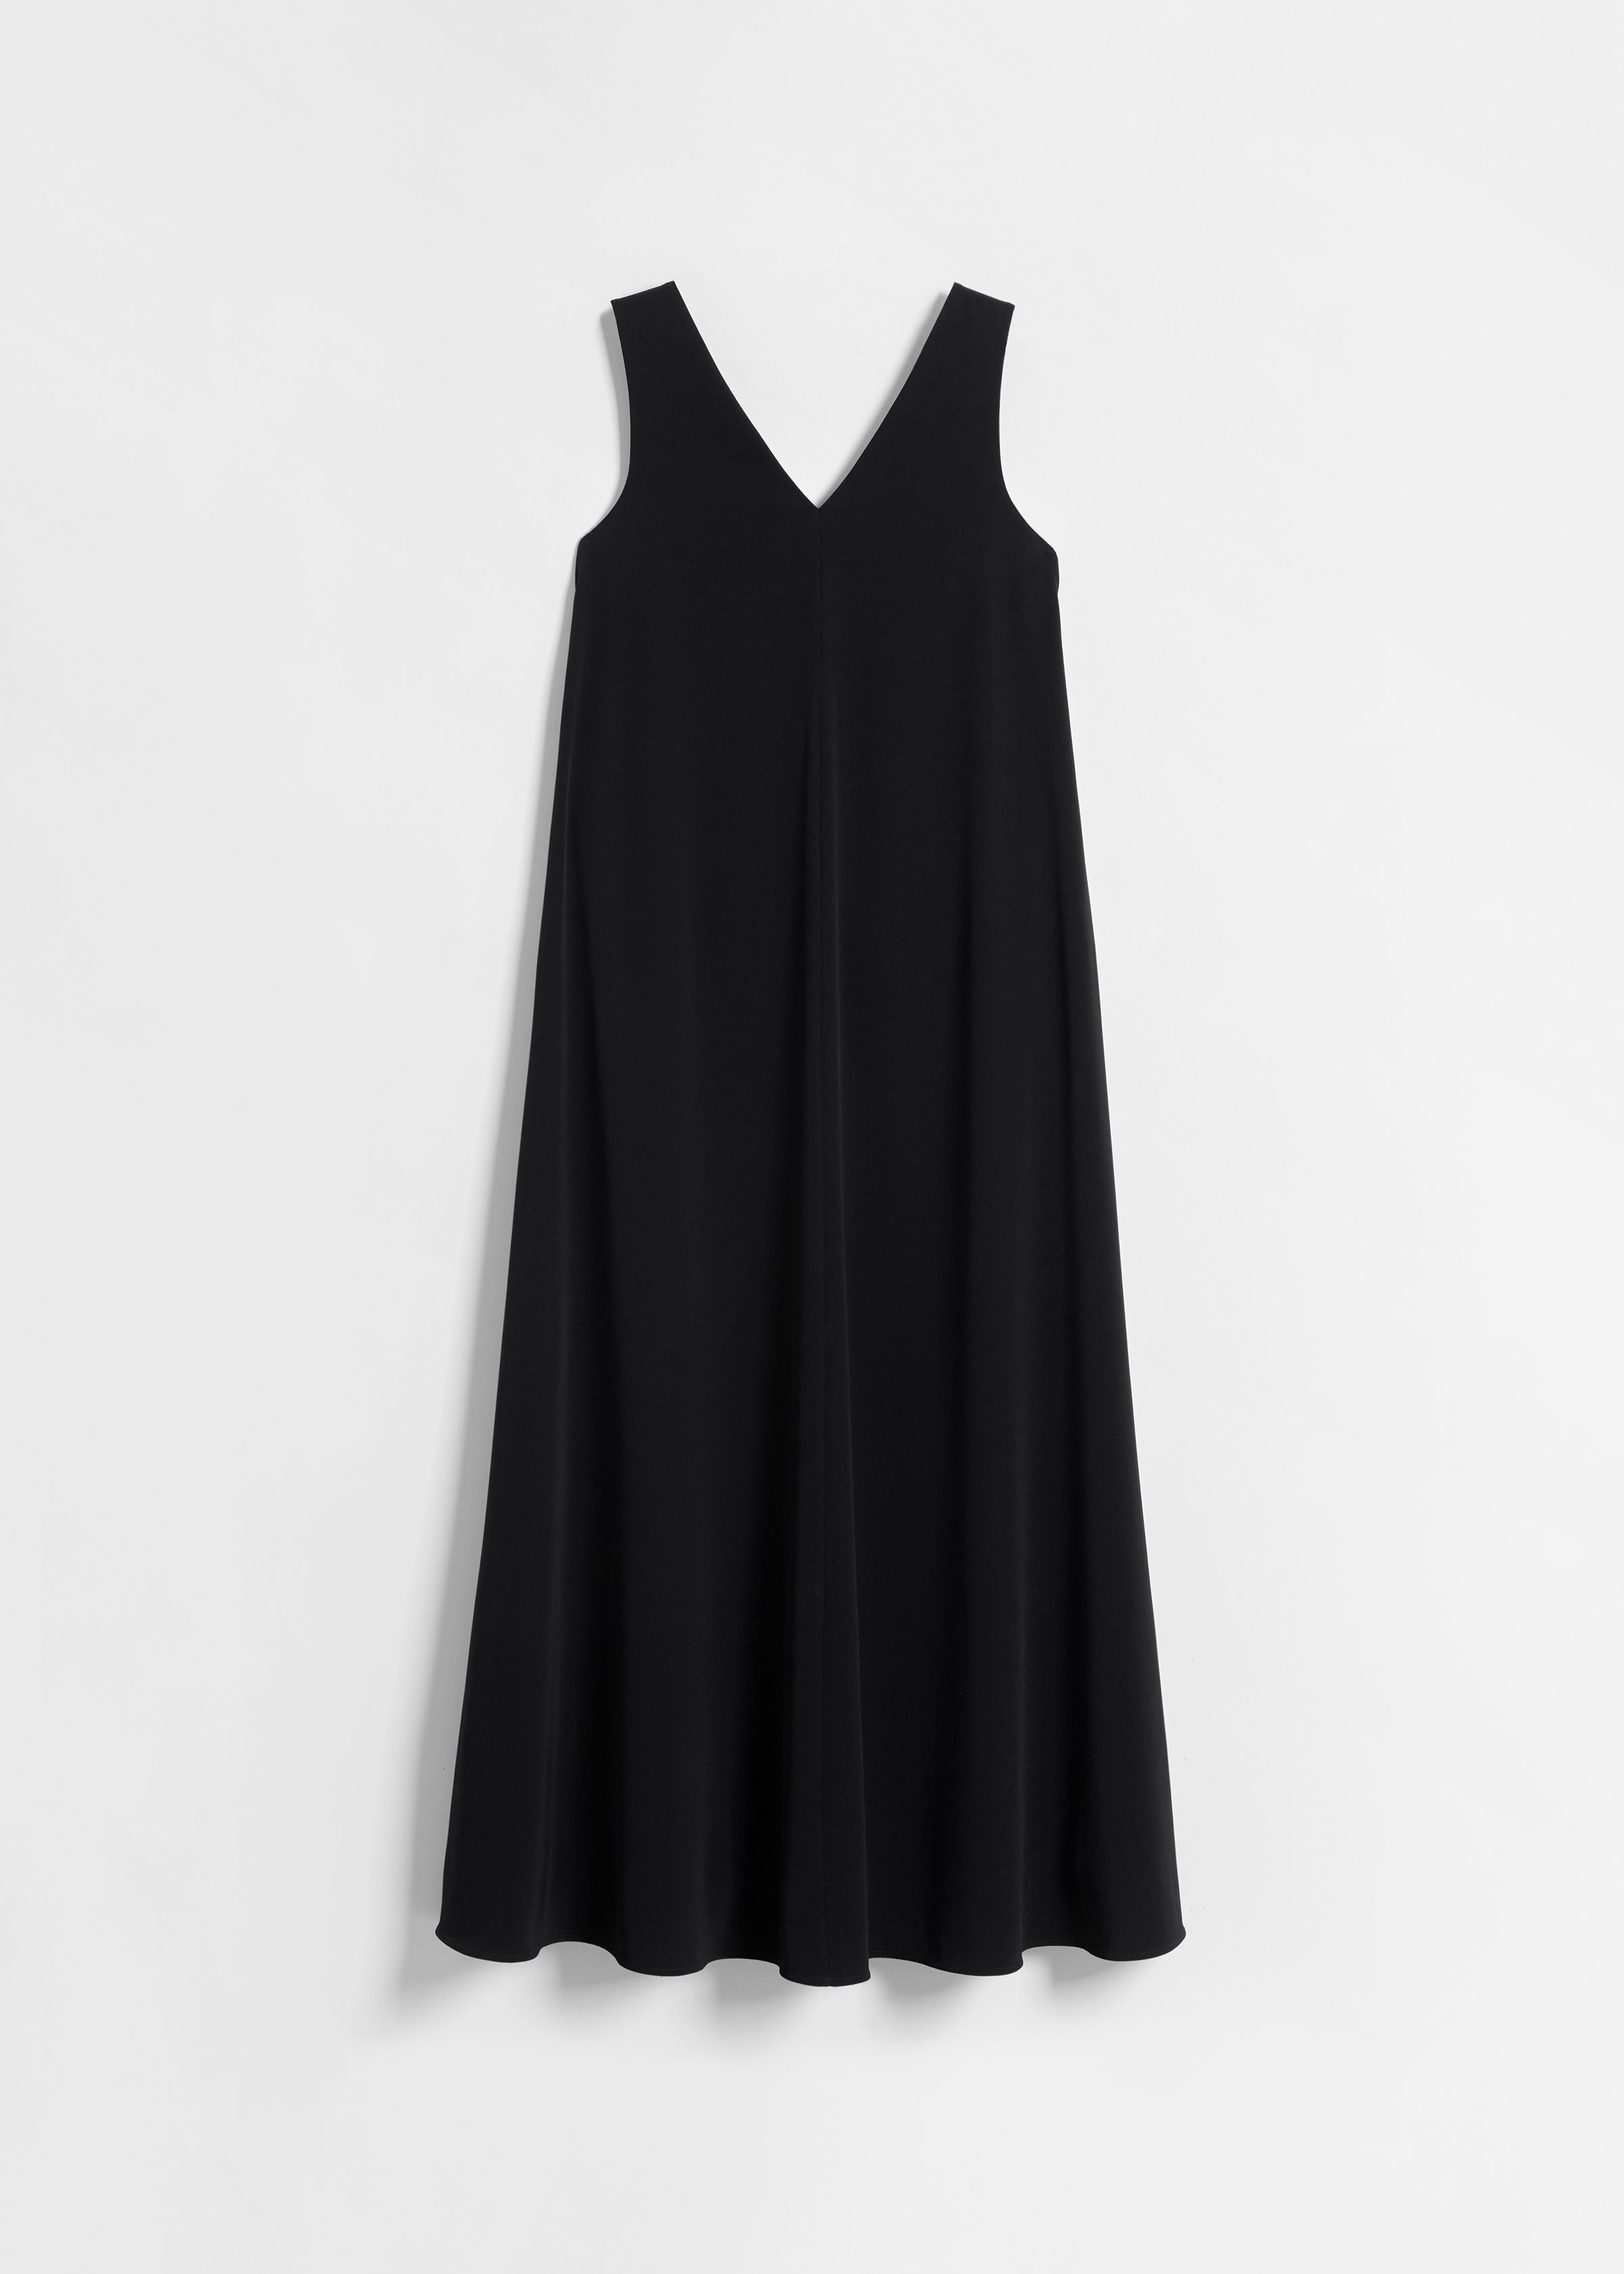 CO - Long Sleeveless V-Neck Dress in Stretch Crepe - Black